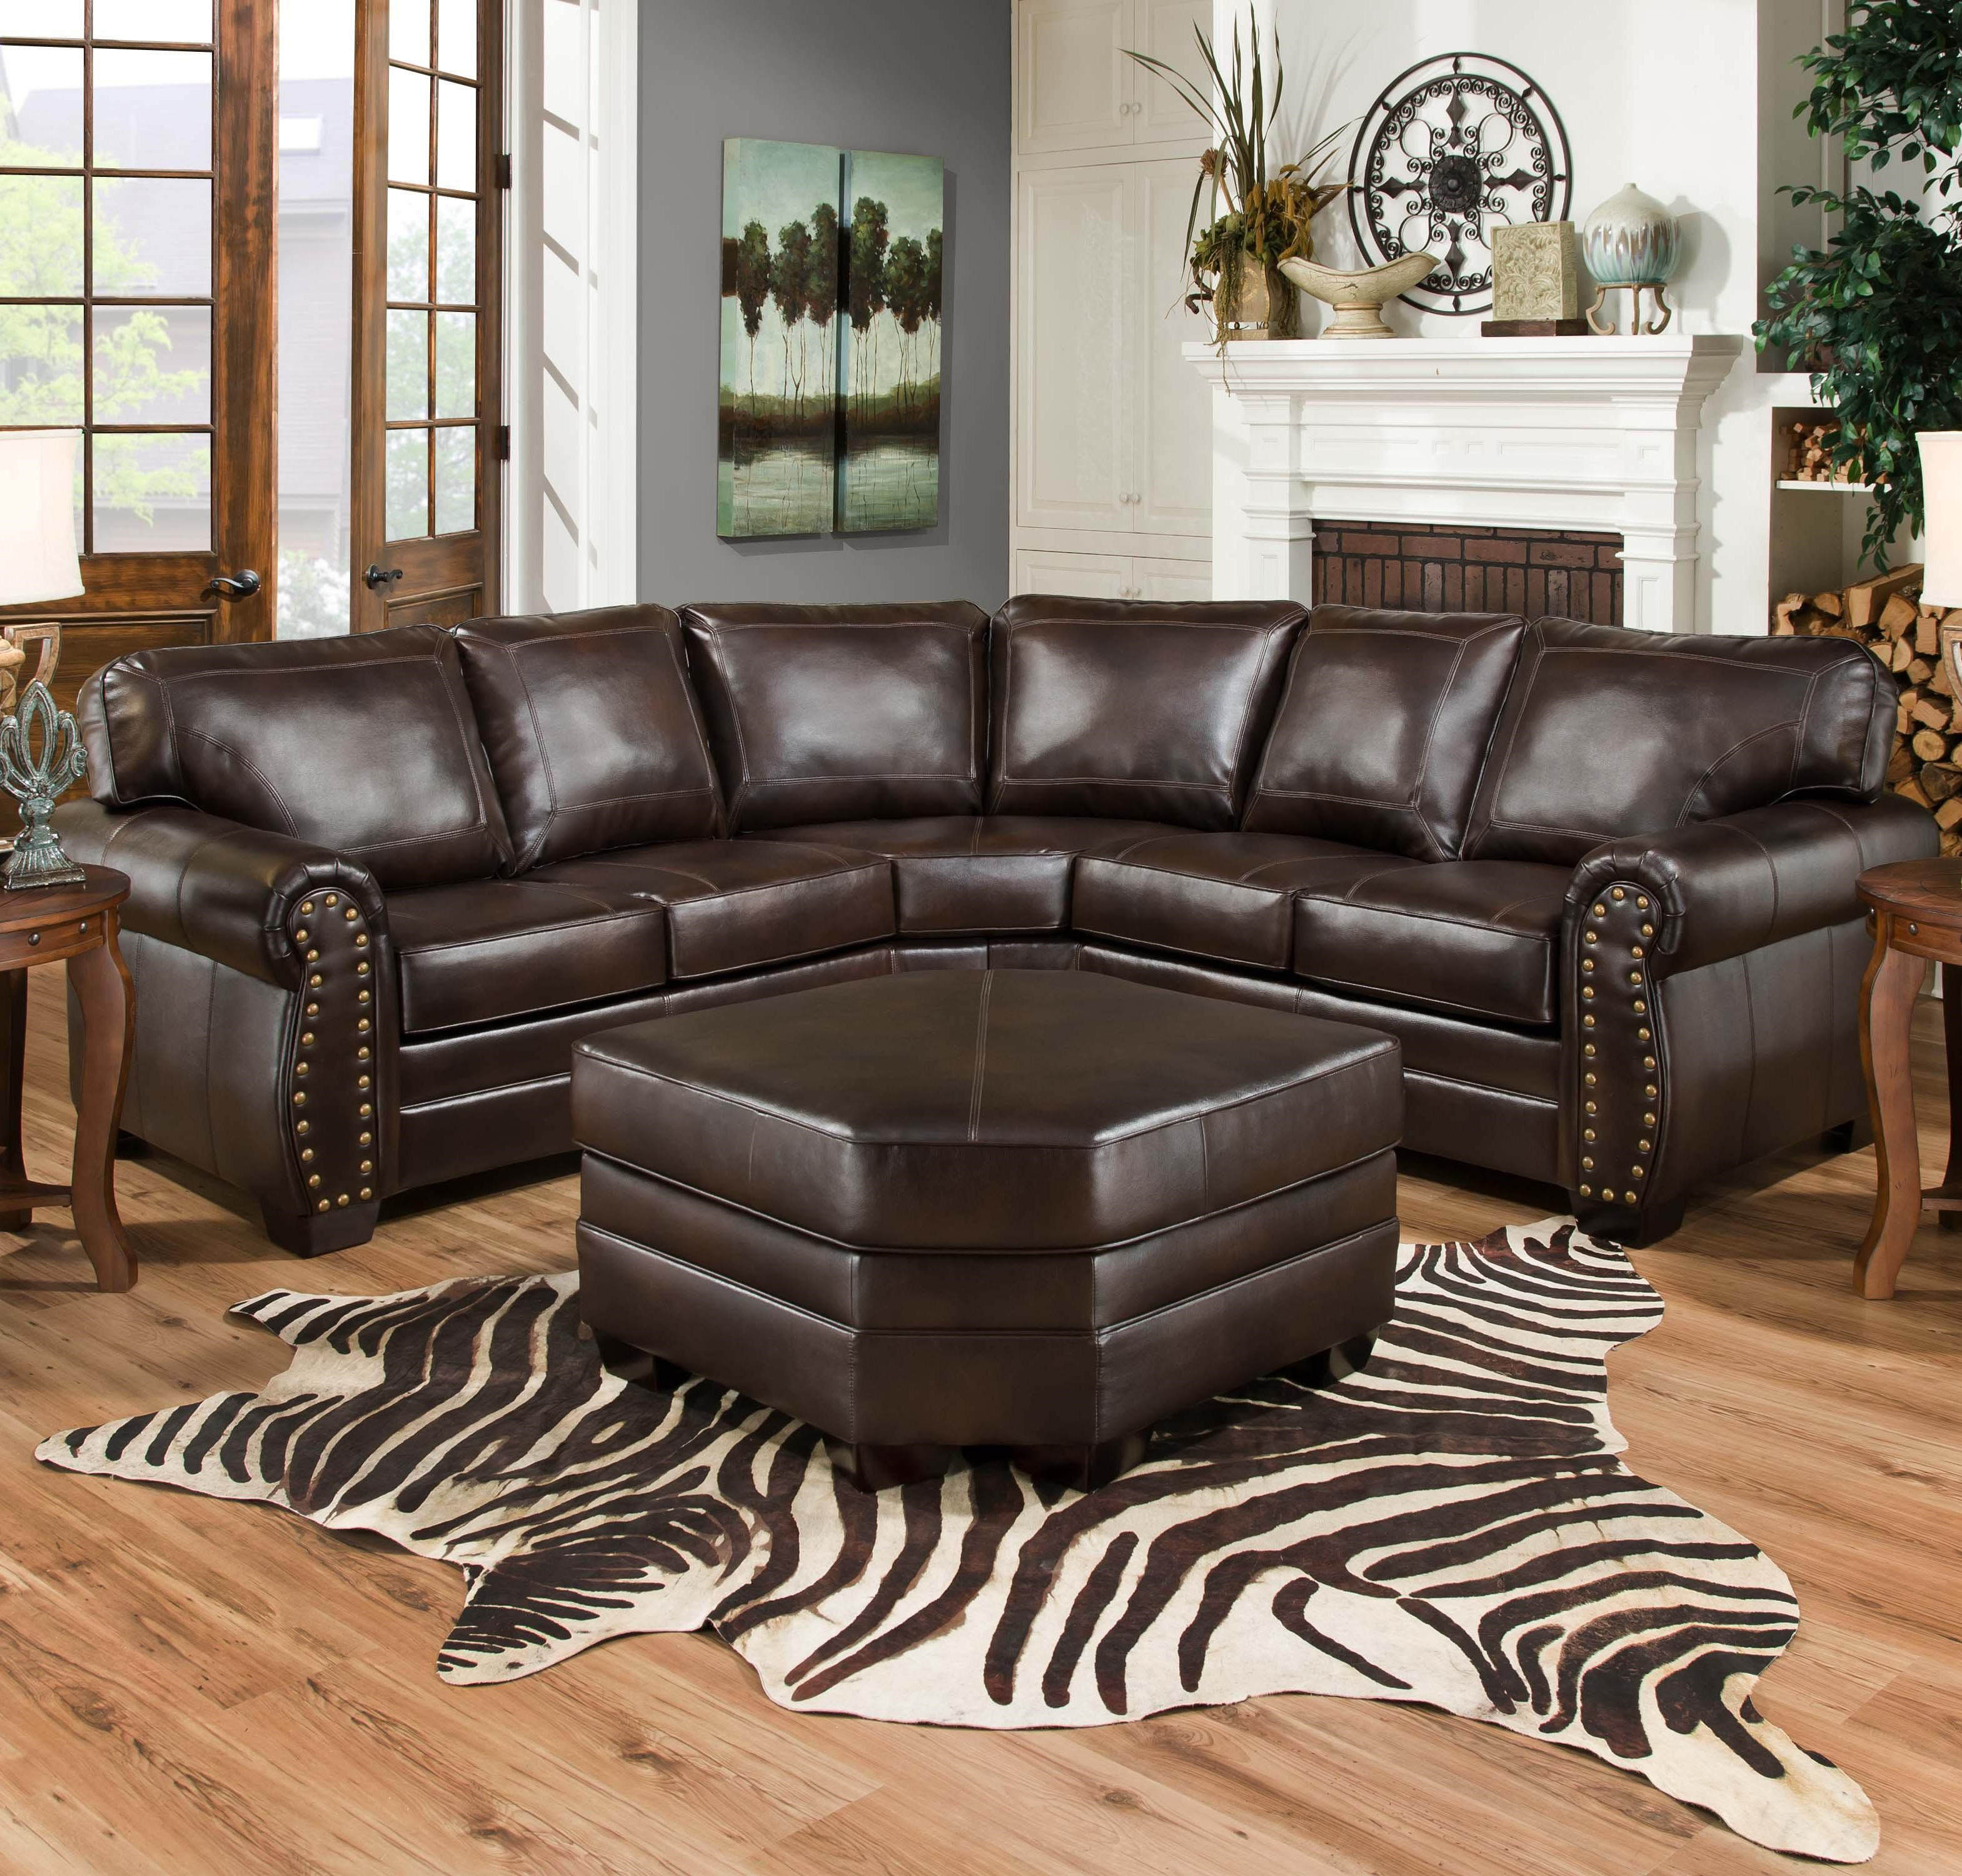 simmons reclining sofa. simmons upholstery 9222 traditional sectional sofa with rolled arms and nail head trim - dunk \u0026 bright furniture reclining s